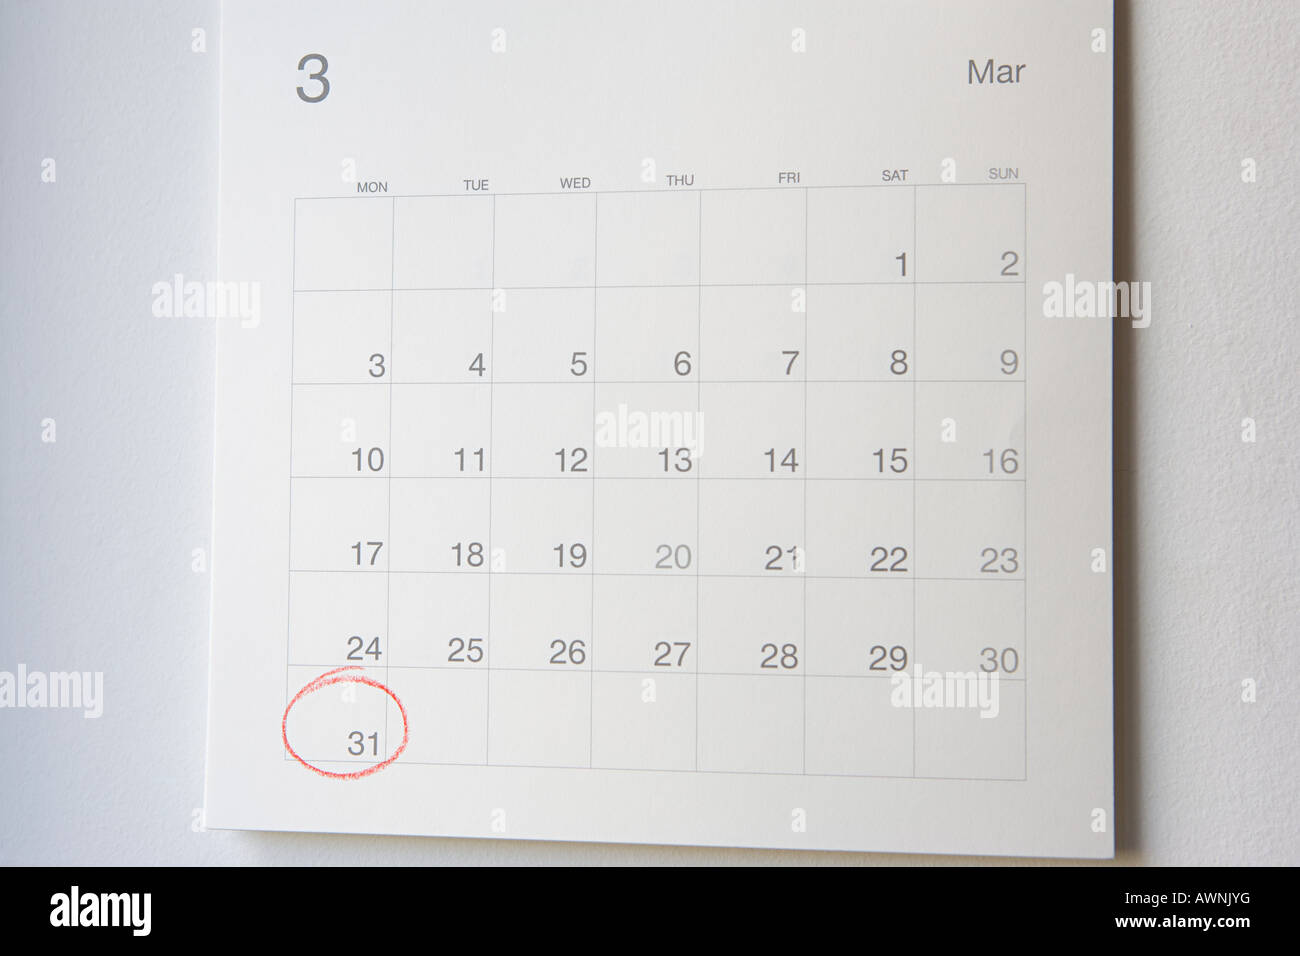 Number thirty one circled on a calendar - Stock Image